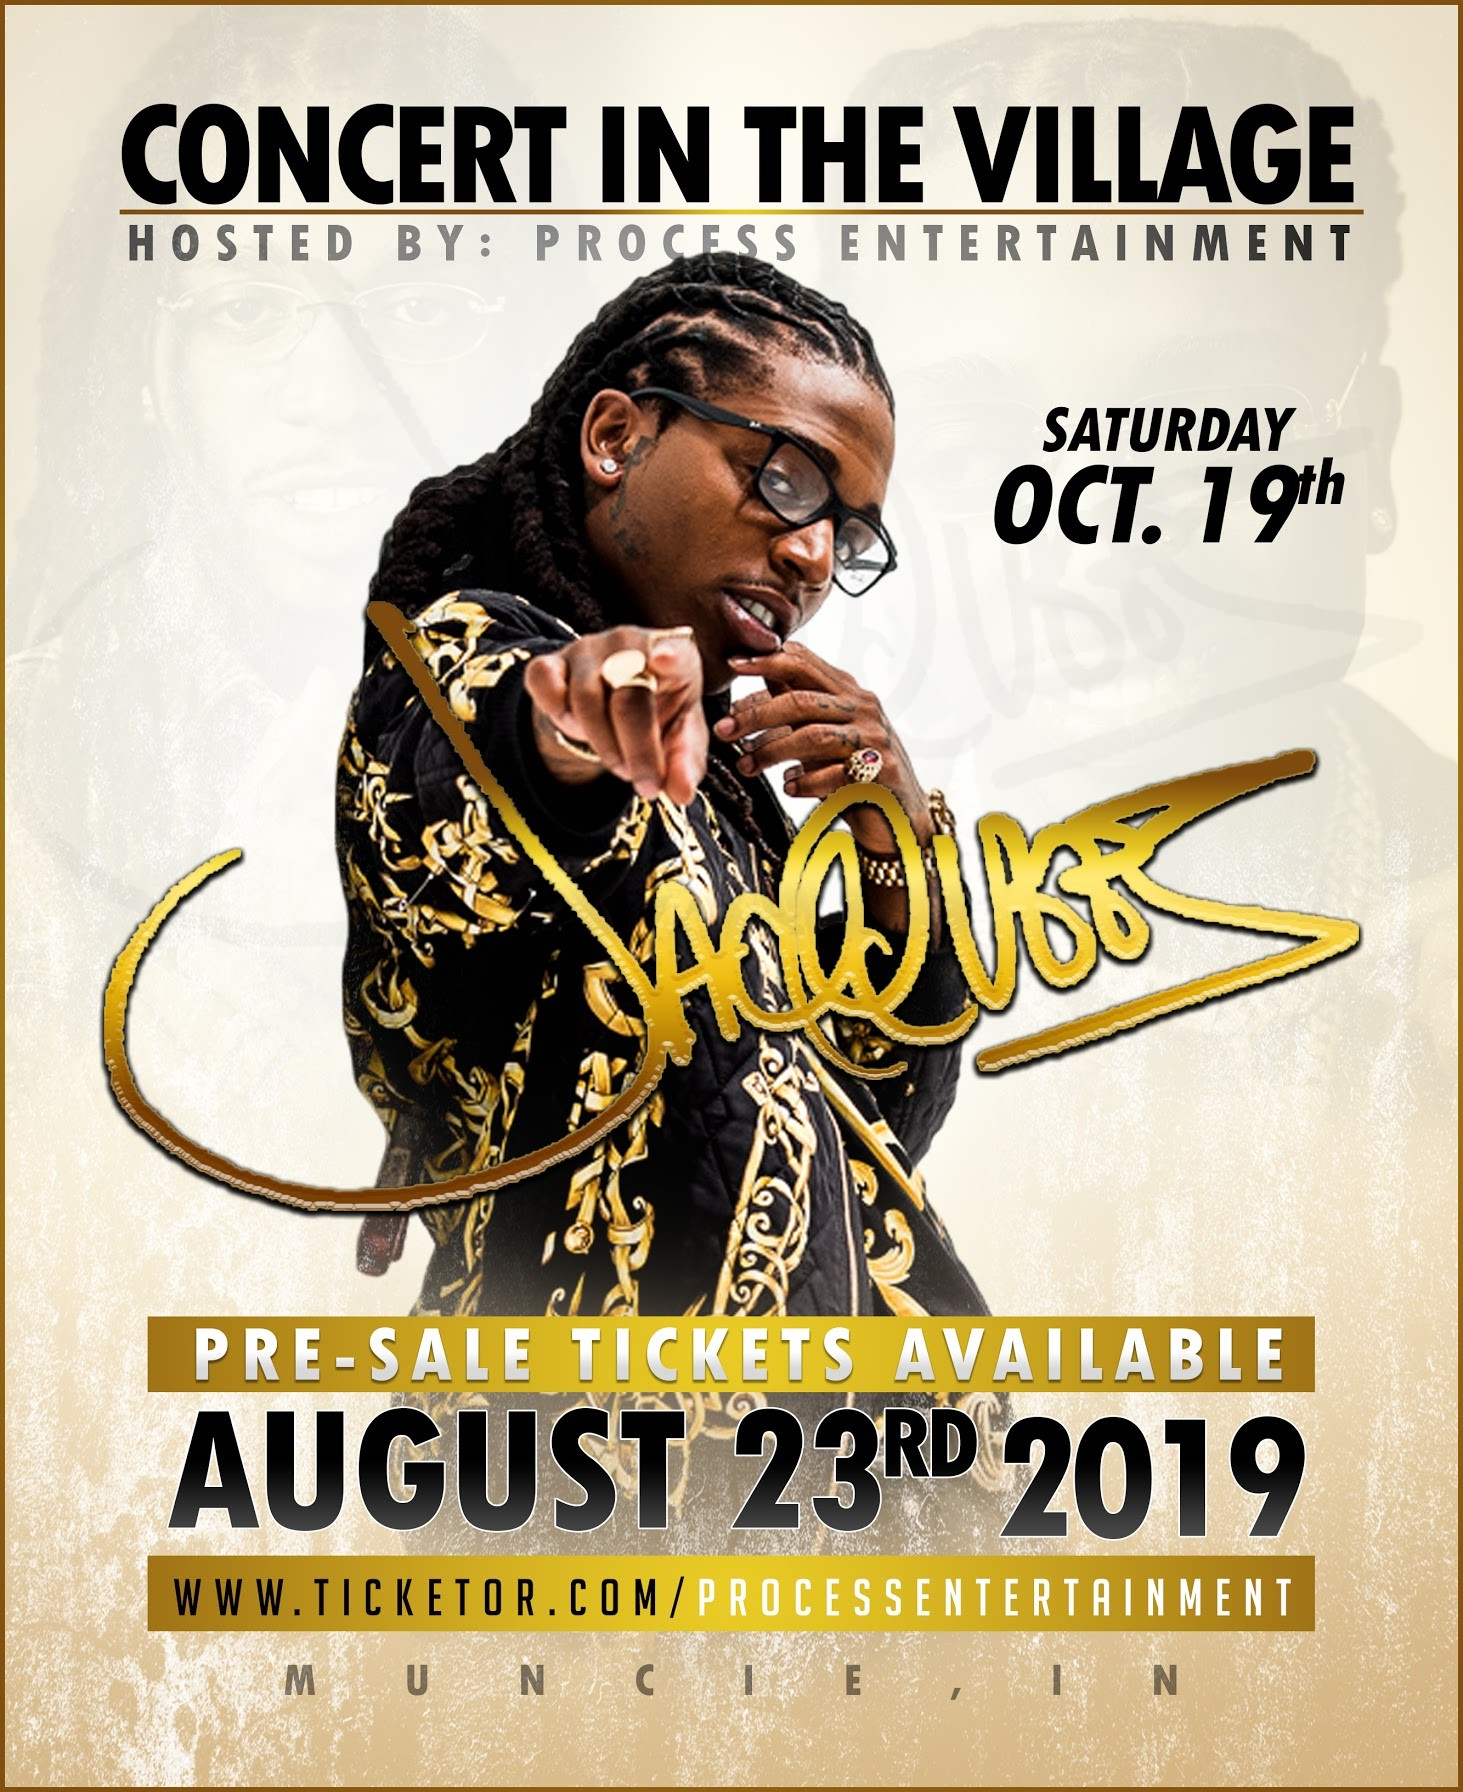 Jacquees LIVE @ Concert in the Village 2019 Muncie, IN (Outdoor) on Oct 19, 18:00@Village (Muncie) - Buy tickets and Get information on Process Entertainment